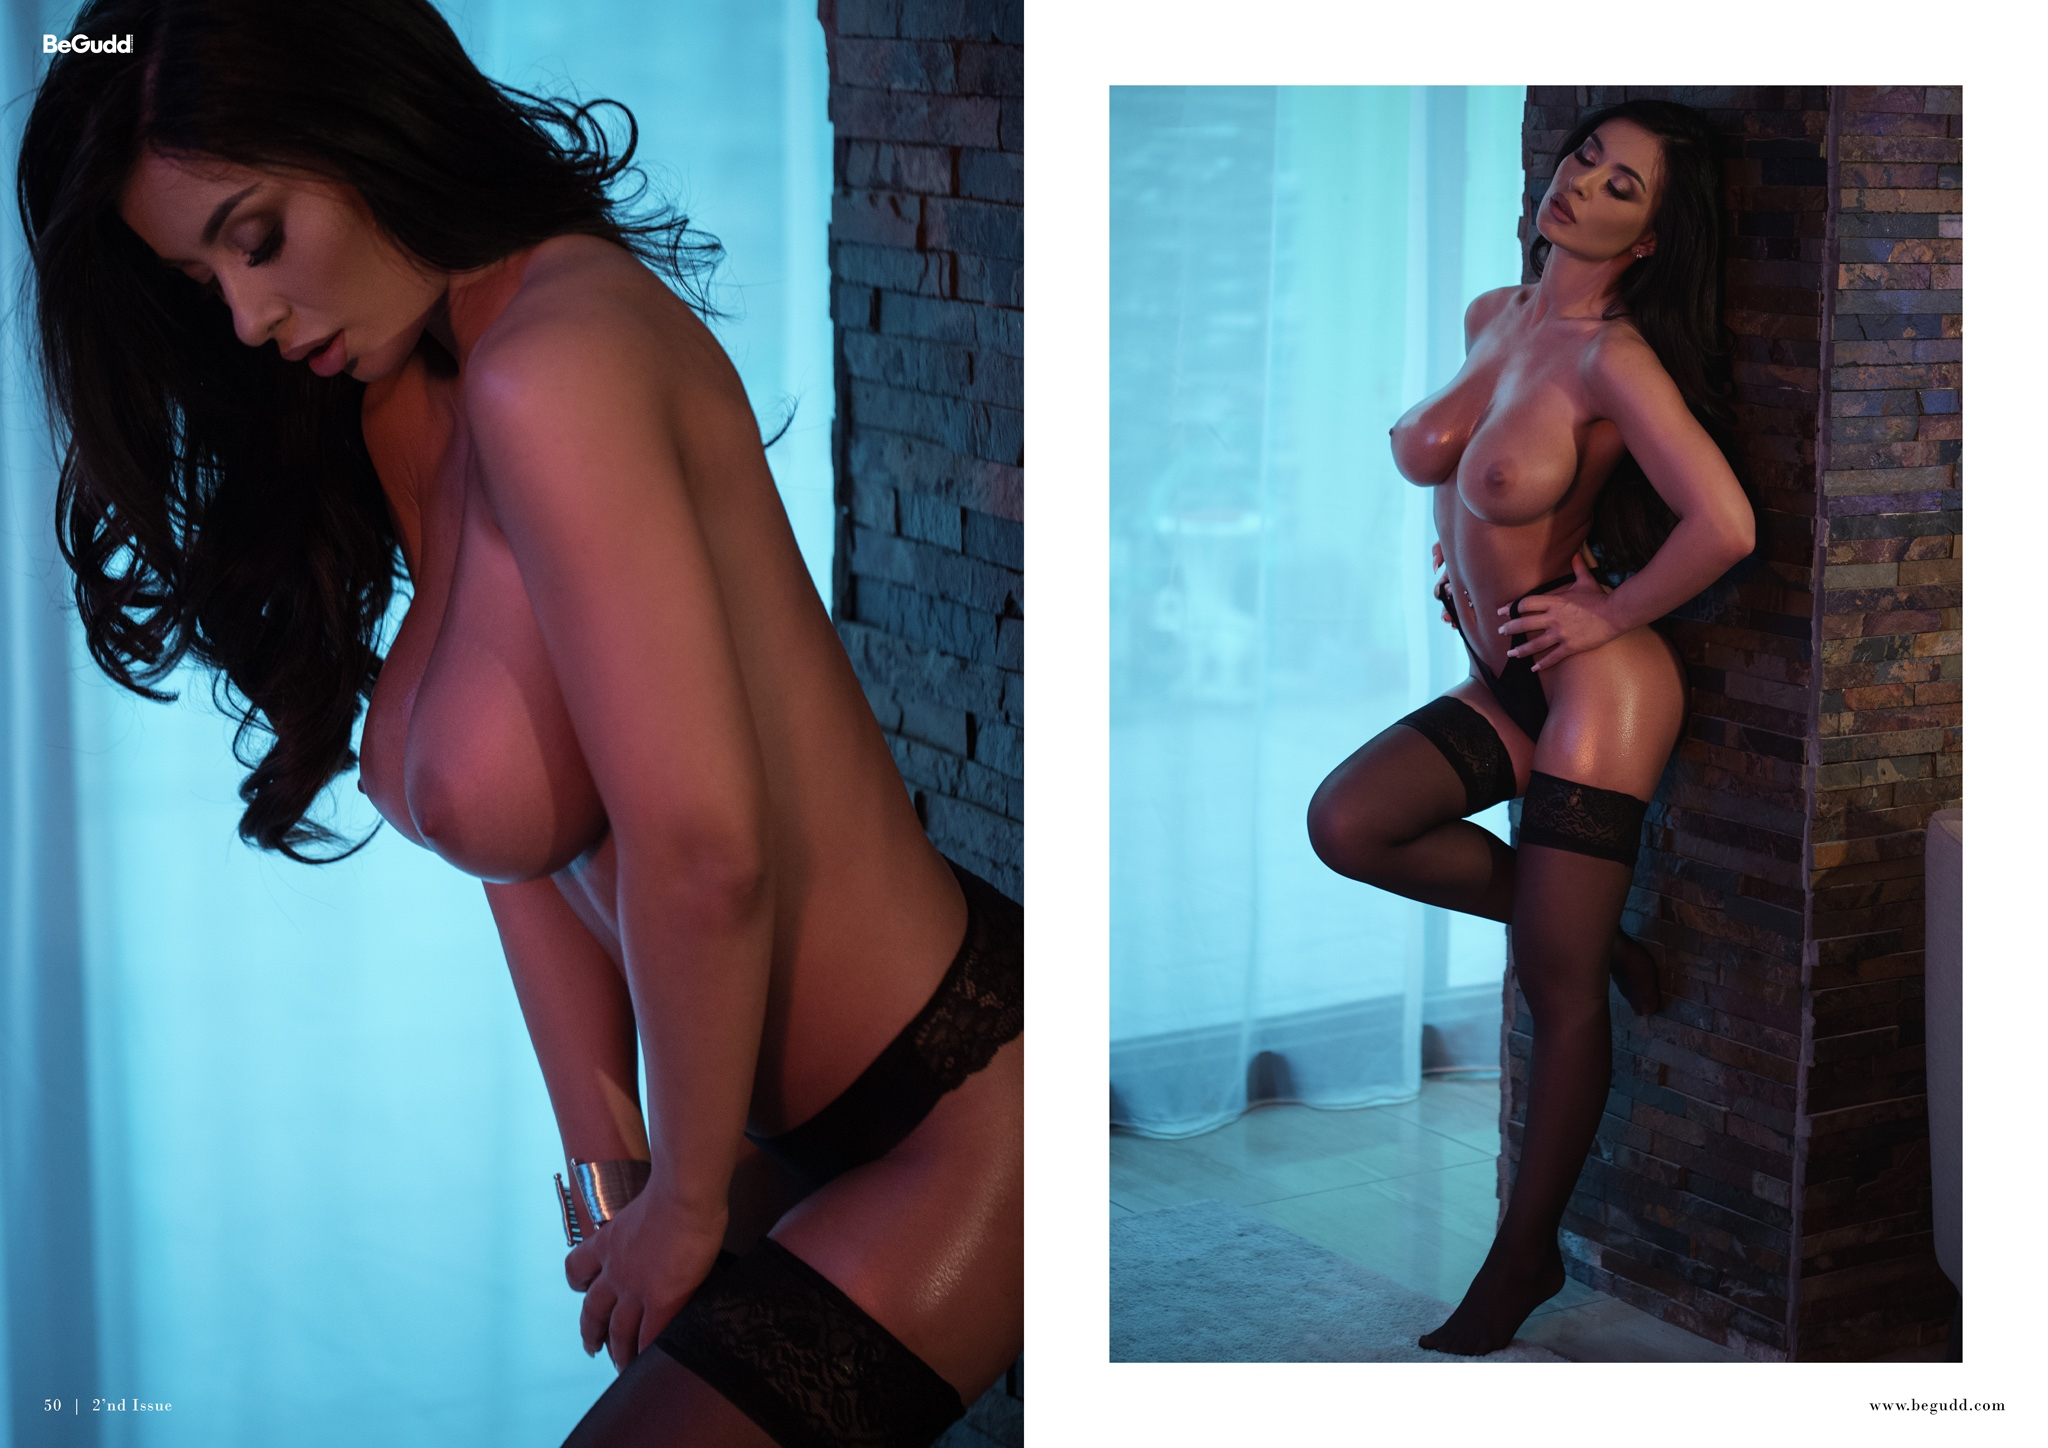 BeGudd Magazine Lavinia Hot Lingerie Model Catalin Muntean